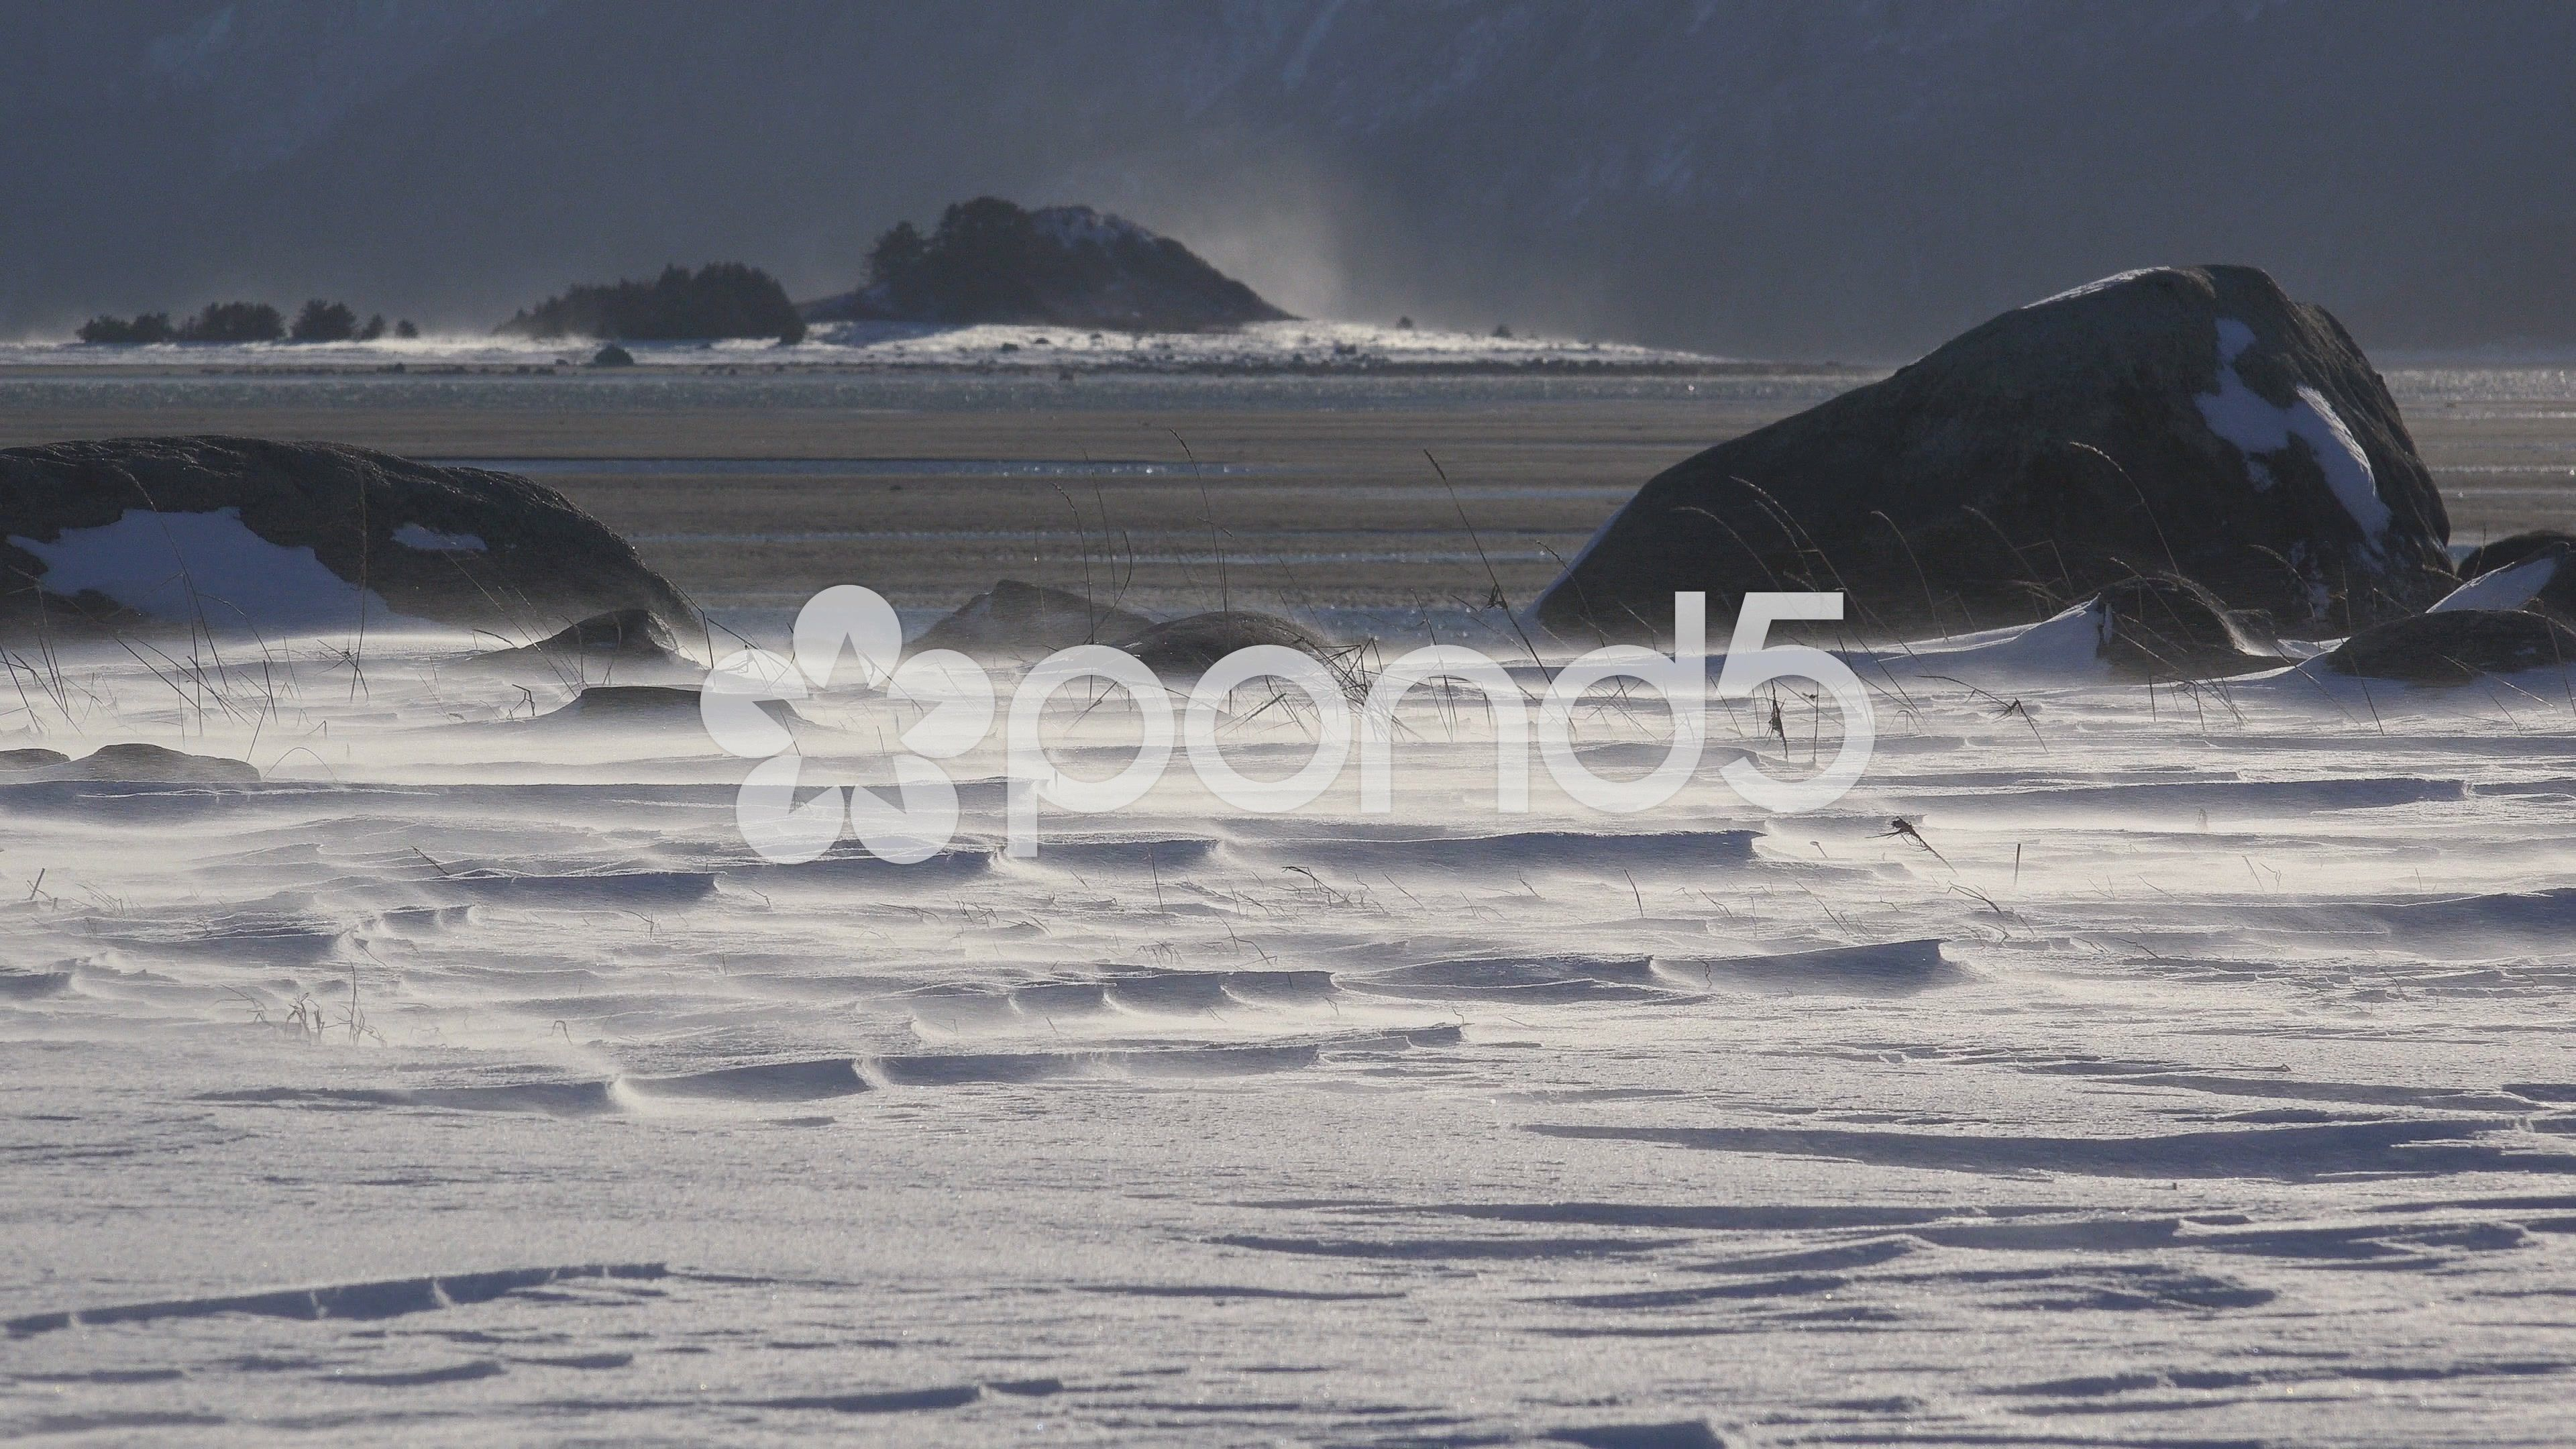 Driven By Winter Wind >> Wind Driven Snow On Rocks And Tidal Flats Pyramid Island Distant 4k